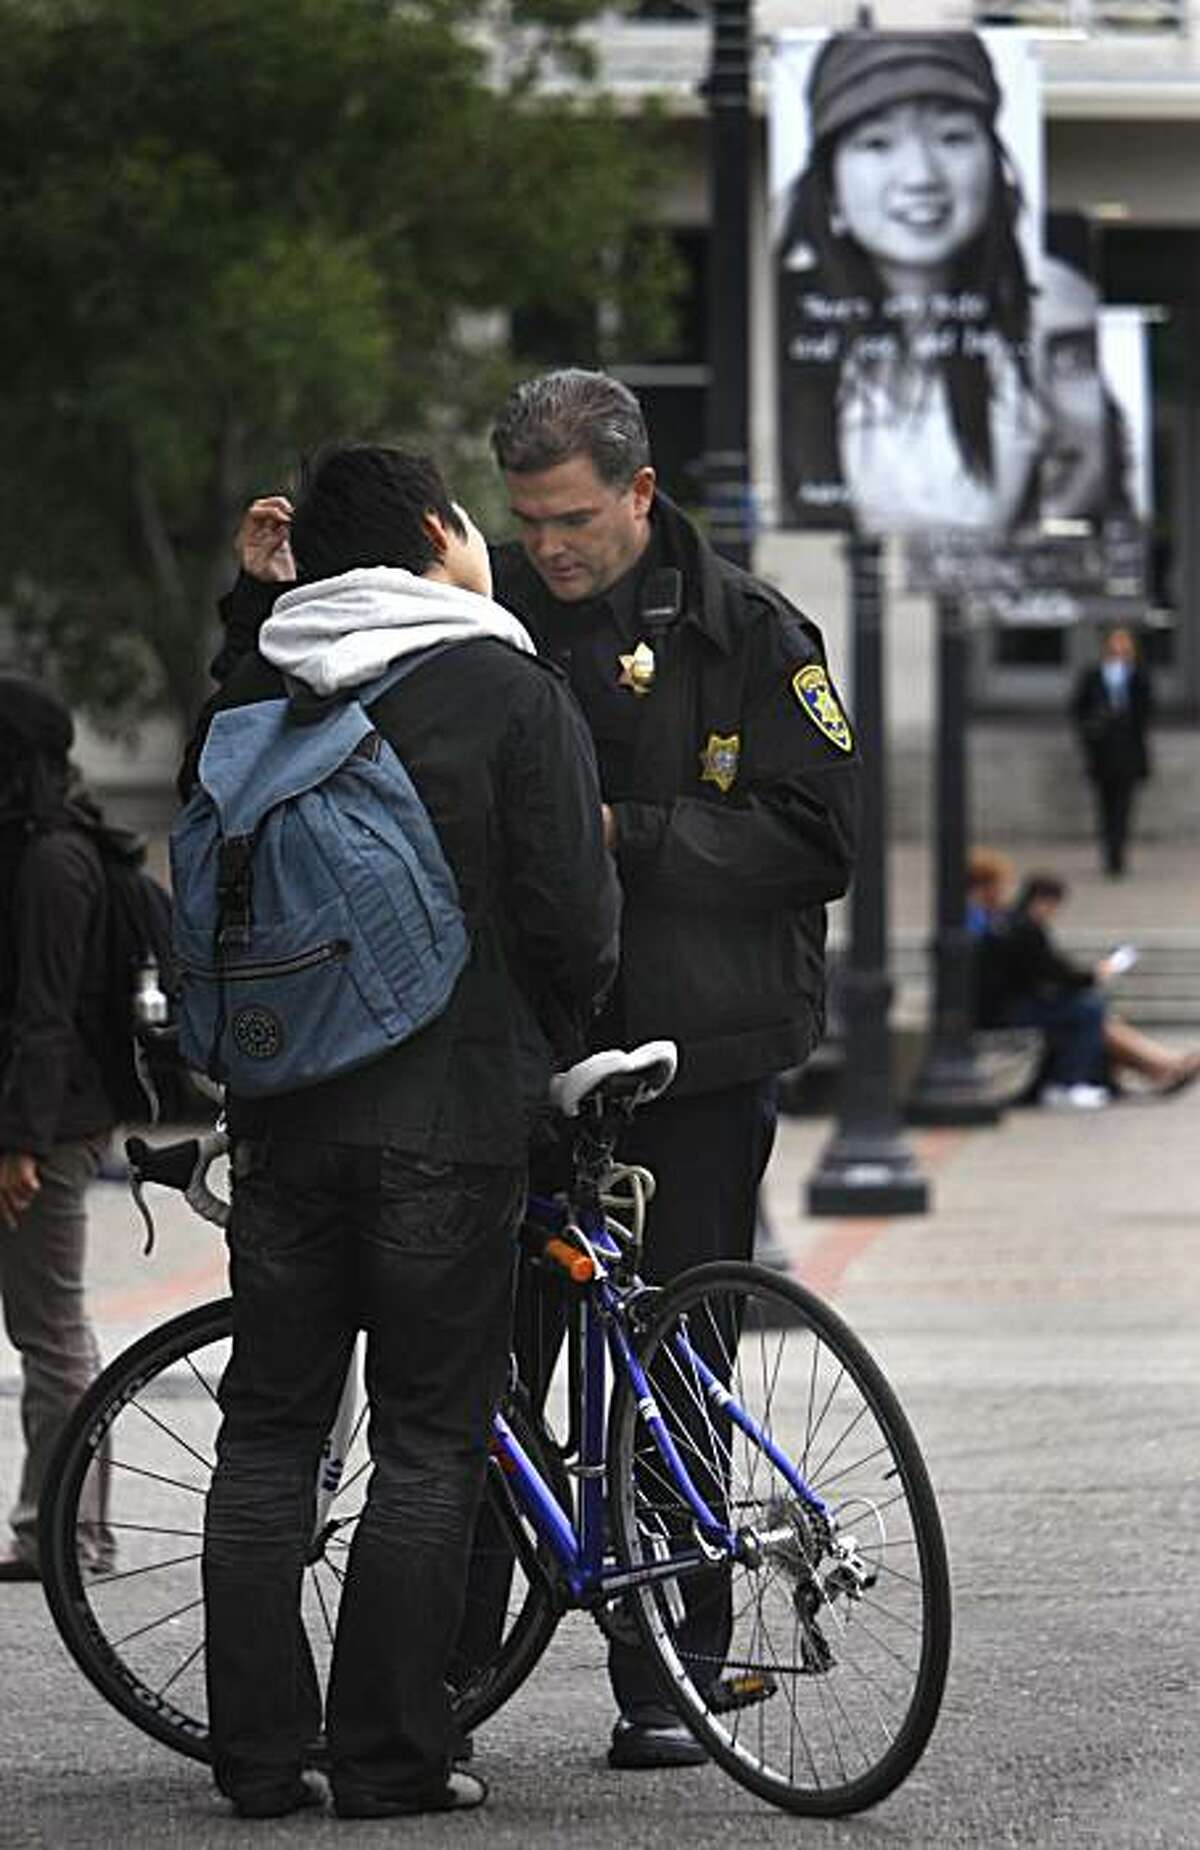 UC police officer Lawrence Green issues a verbal warning to a student who was caught riding his bicycle through the designated dismount zone near Wheeler Hall at UC Berkeley on Thursday, Dec. 2, 2010. Officer Green said bicycle riders create an